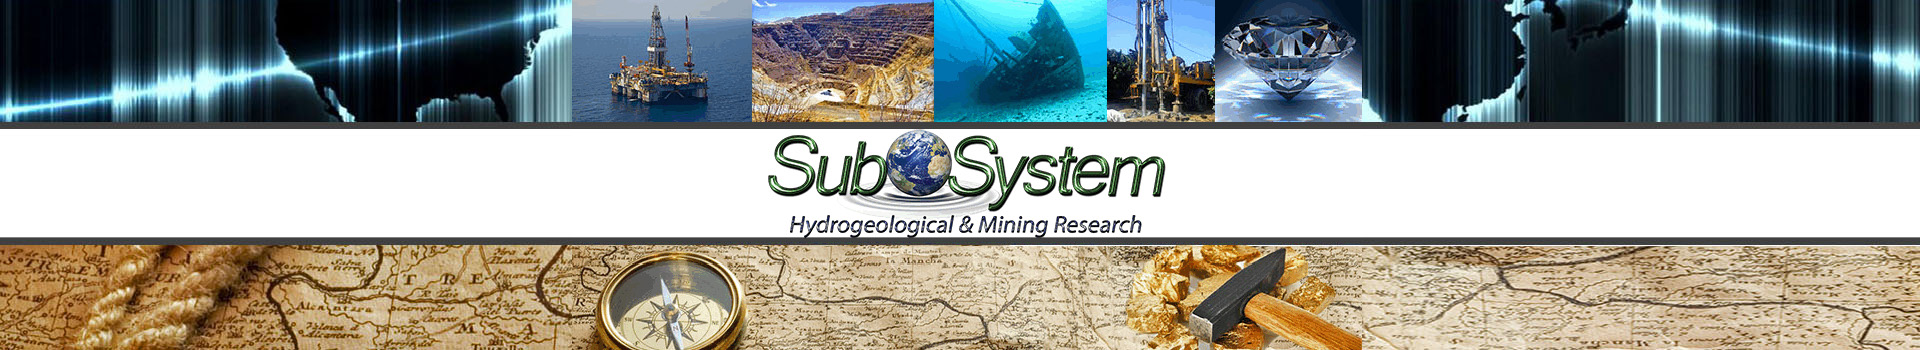 Subsystem